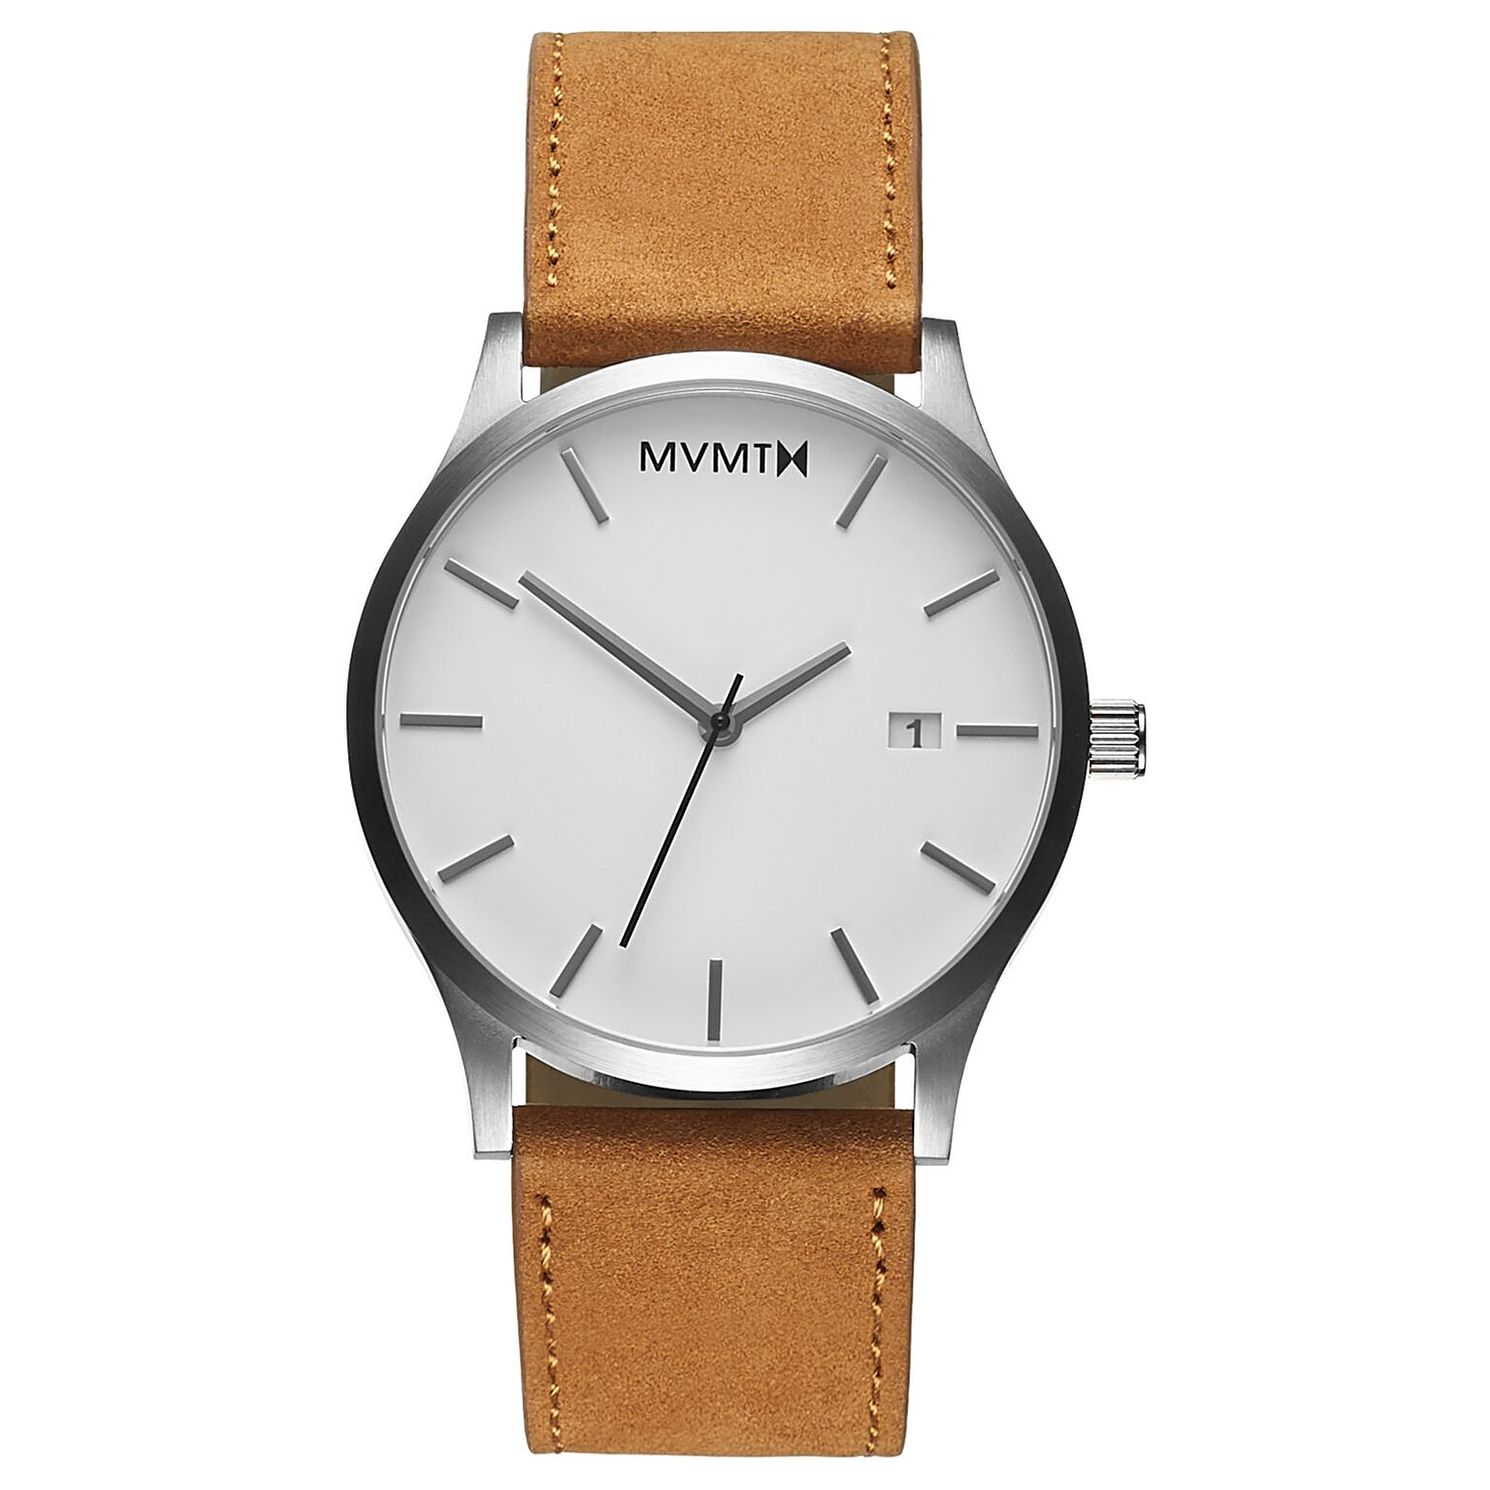 MVMT Classic Men's Tan Leather Strap Watch - Product number 2647222